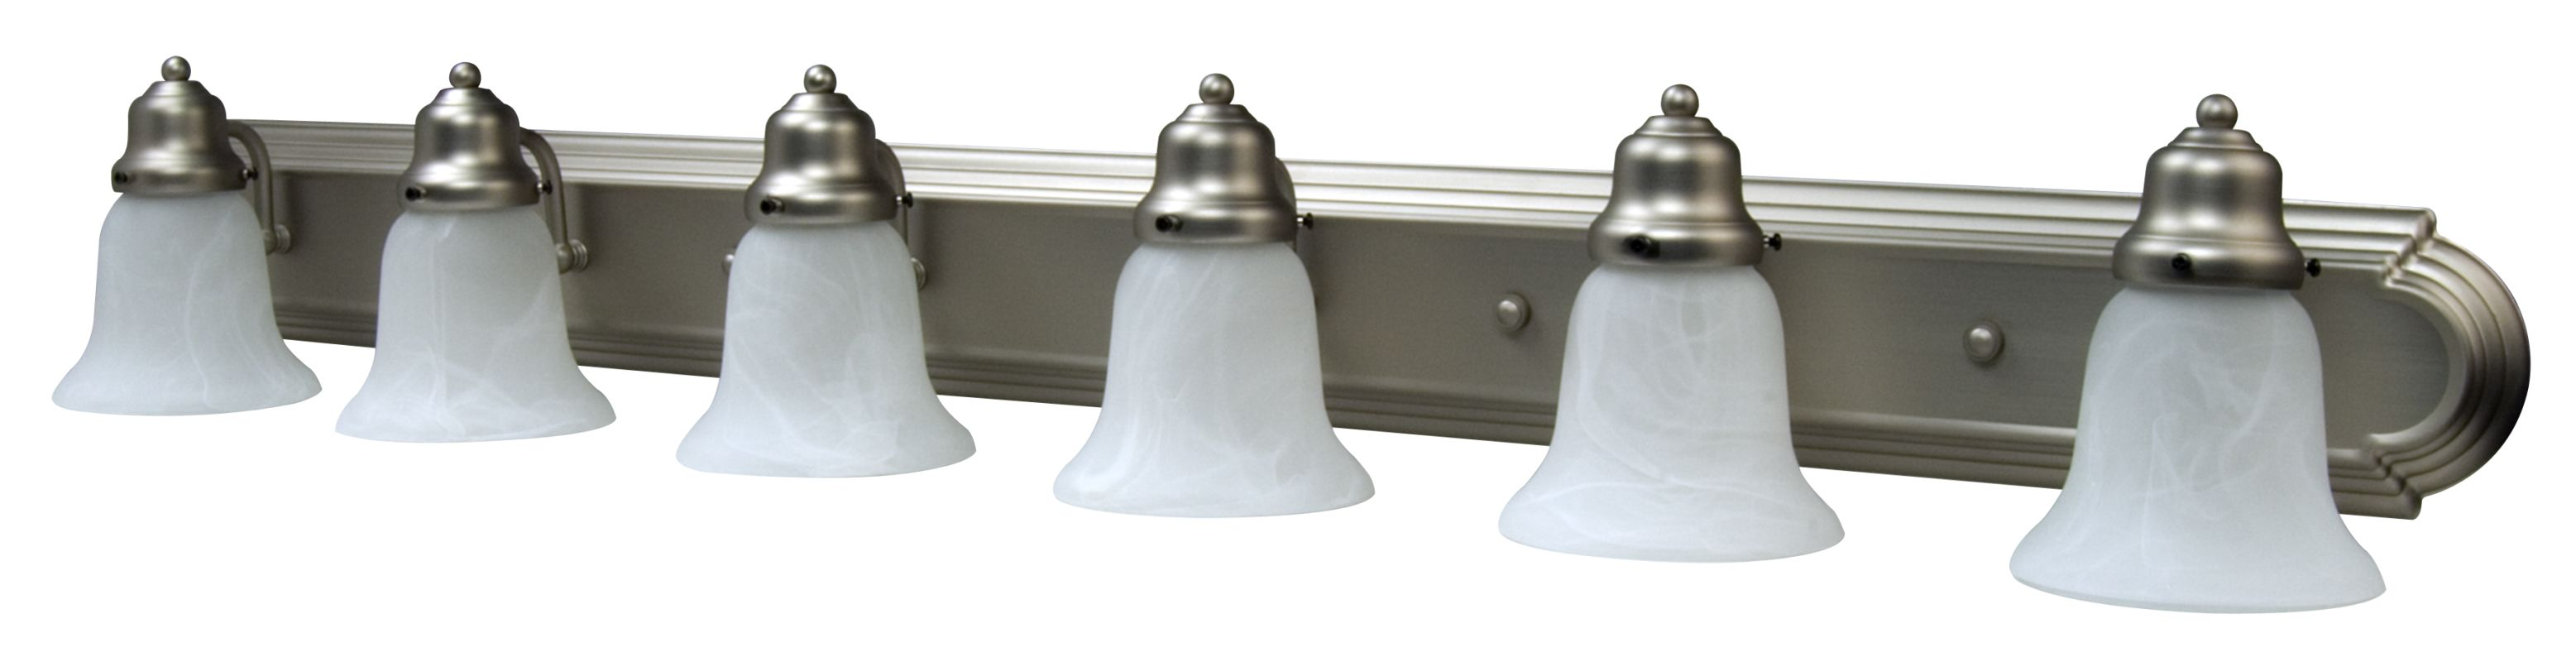 brushed nickel racetrack 6 light bathroom vanity light 48 inches